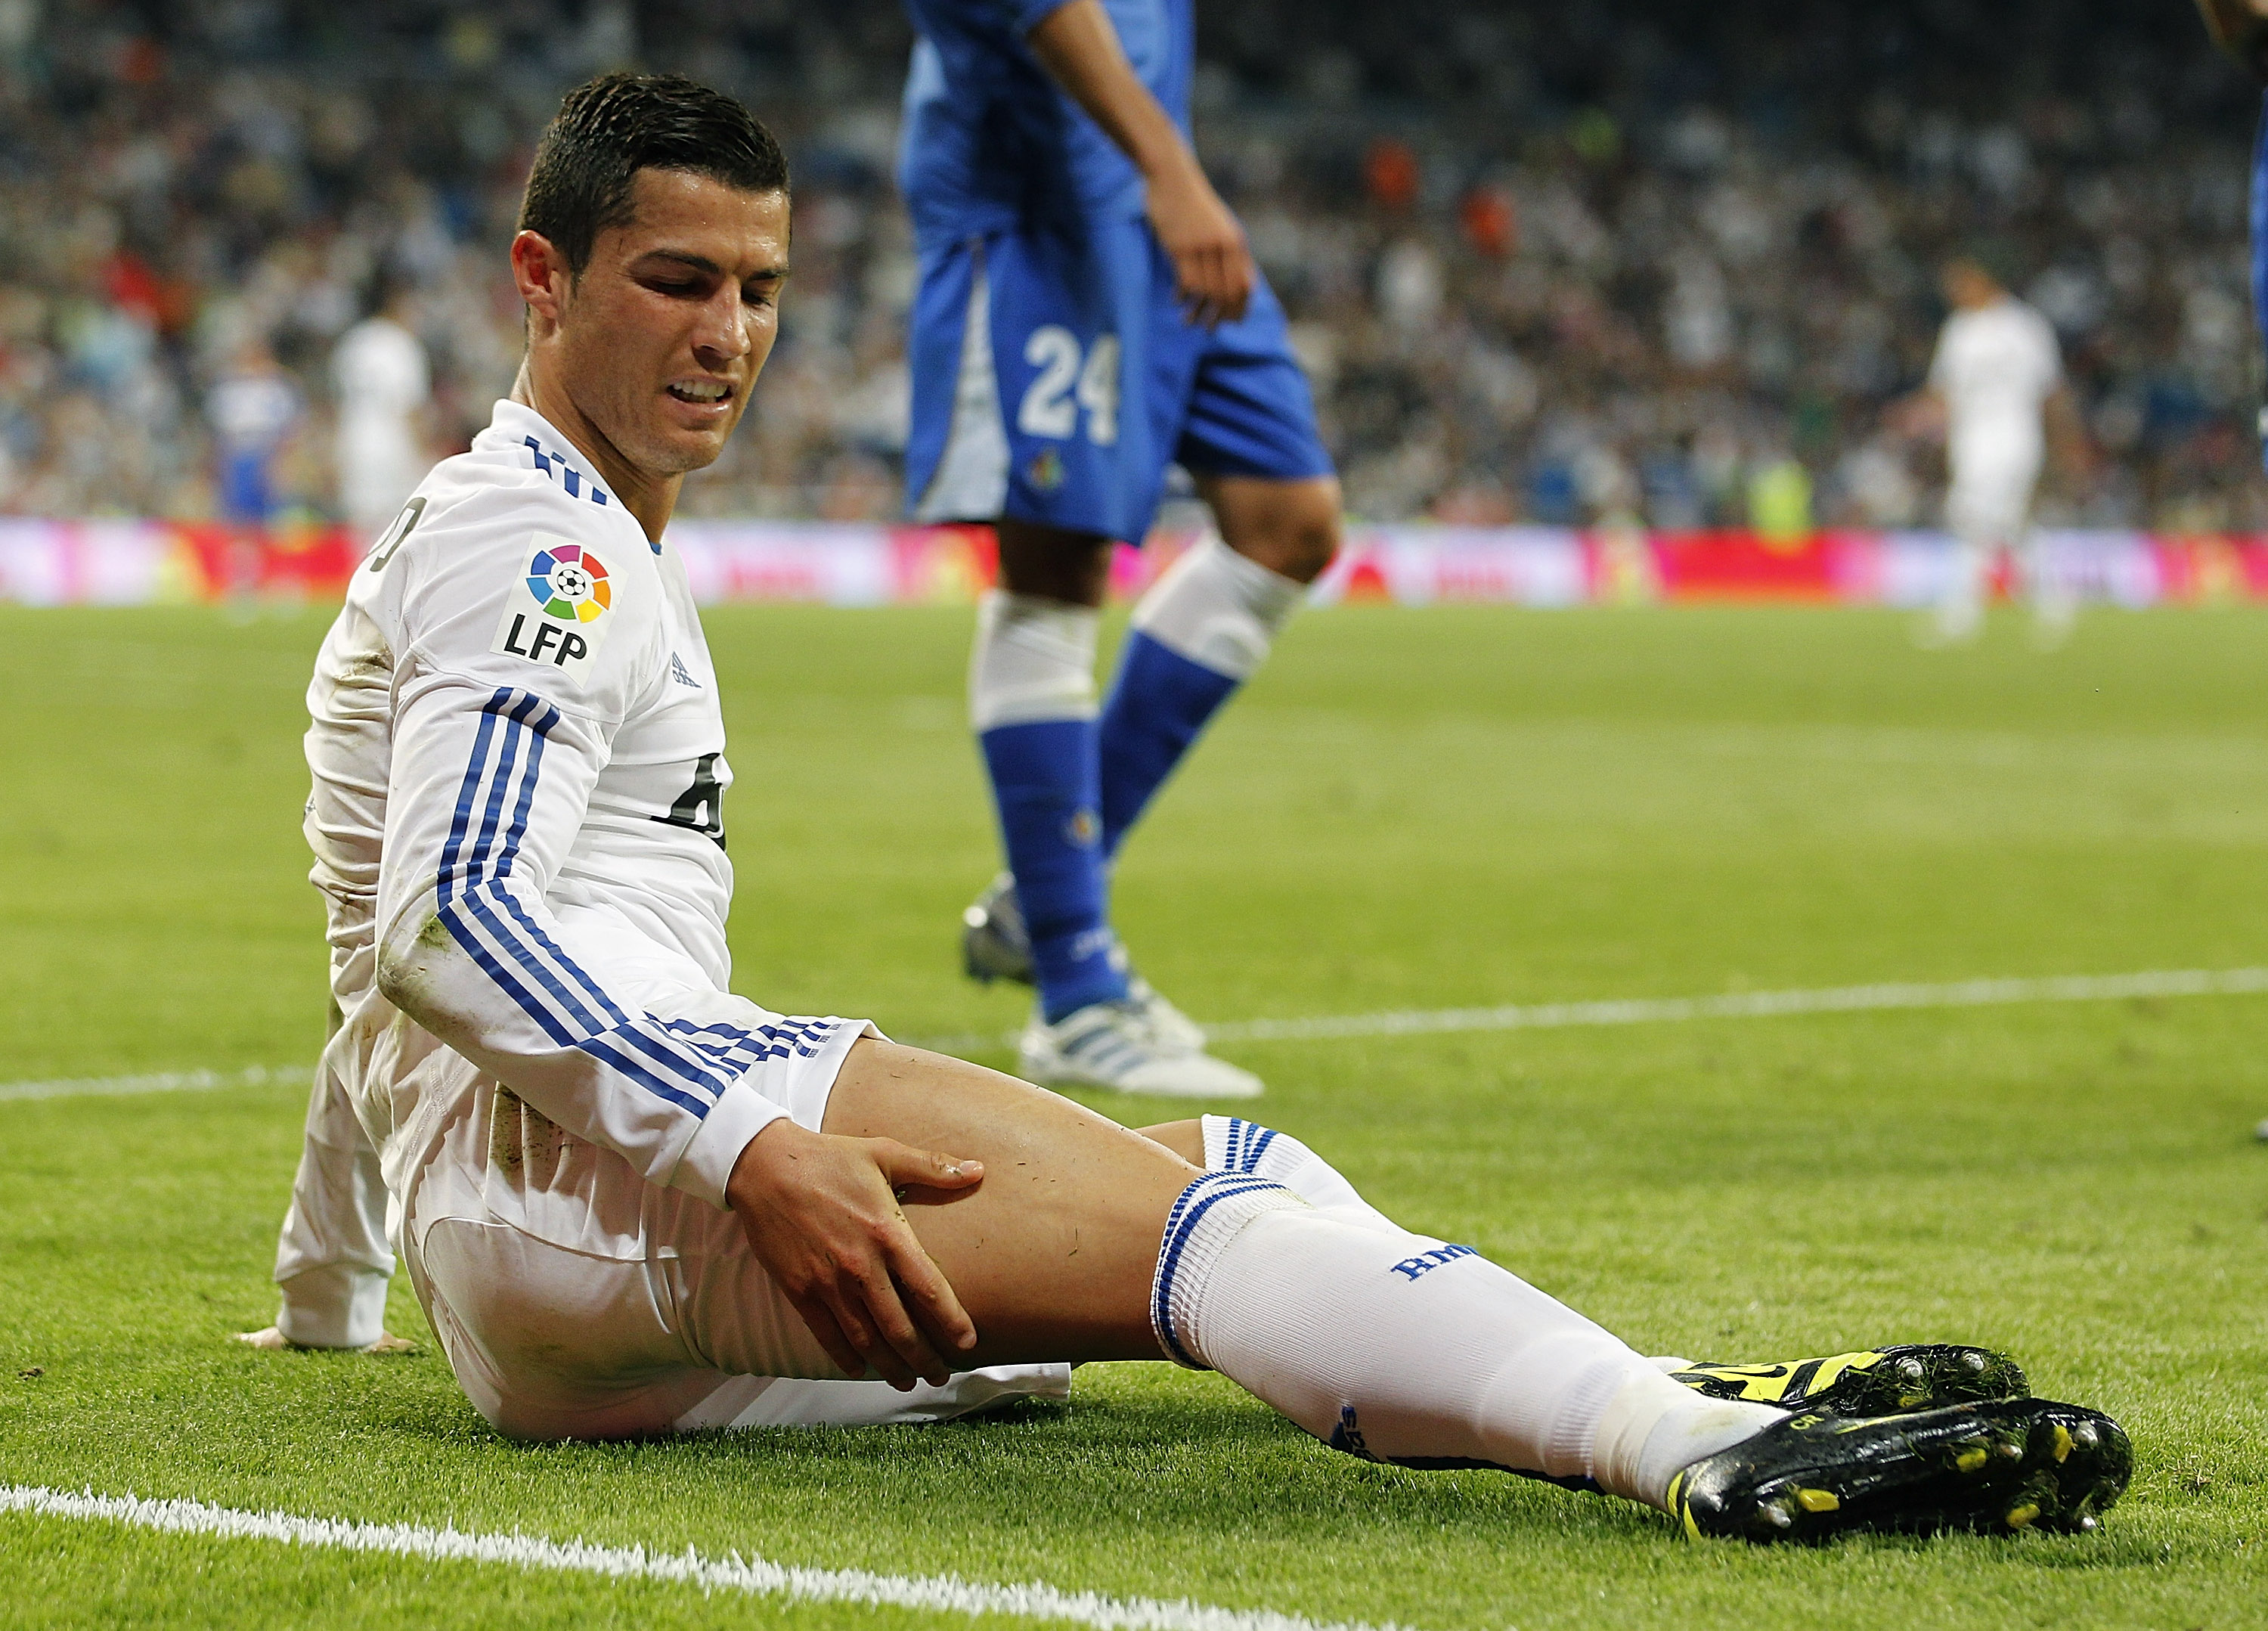 MADRID, SPAIN - MAY 10:  Cristiano Ronaldo of Real Madrid grimaces during the La Liga match between Real Madrid and Getafe at Estadio Santiago Bernabeu on May 10, 2011 in Madrid, Spain.  (Photo by Angel Martinez/Getty Images)